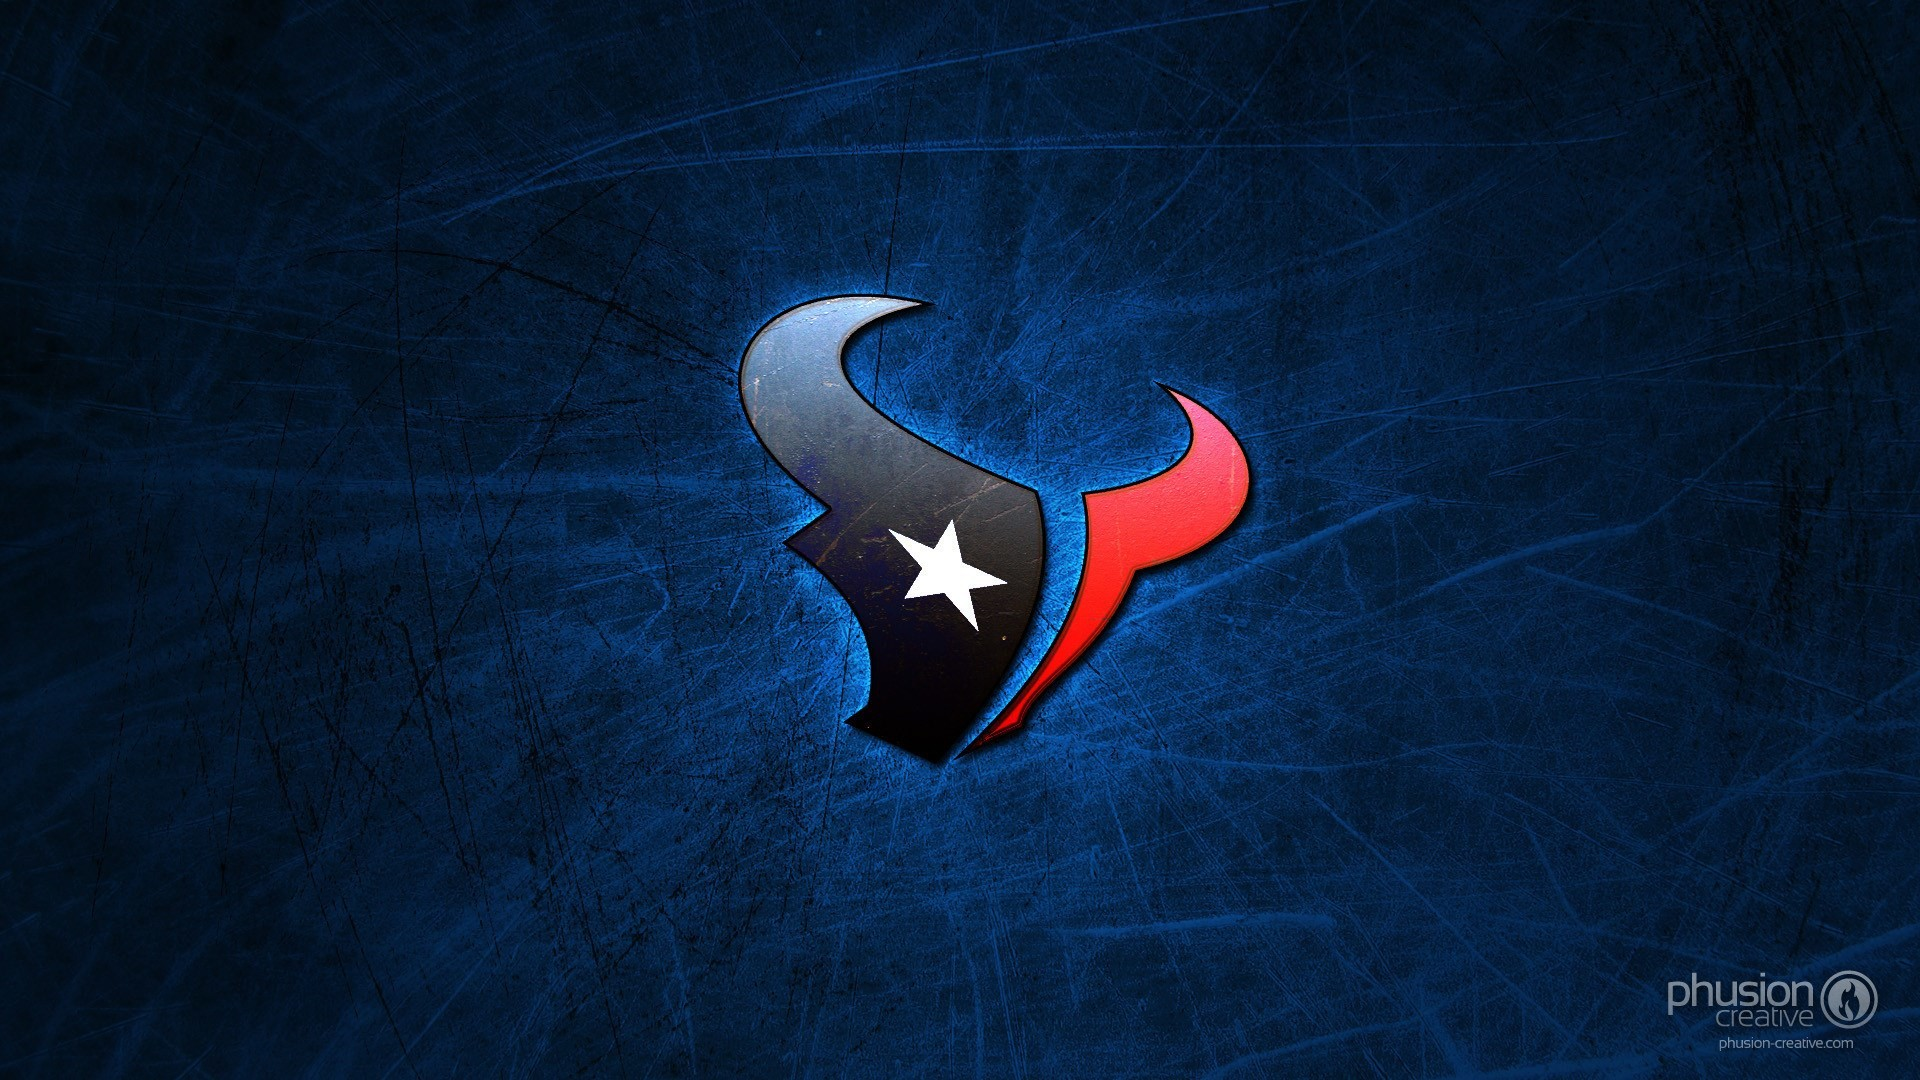 … iphone 6 wallpaper; houston texans wallpaper to download by kurt smith  2017 03 19 …